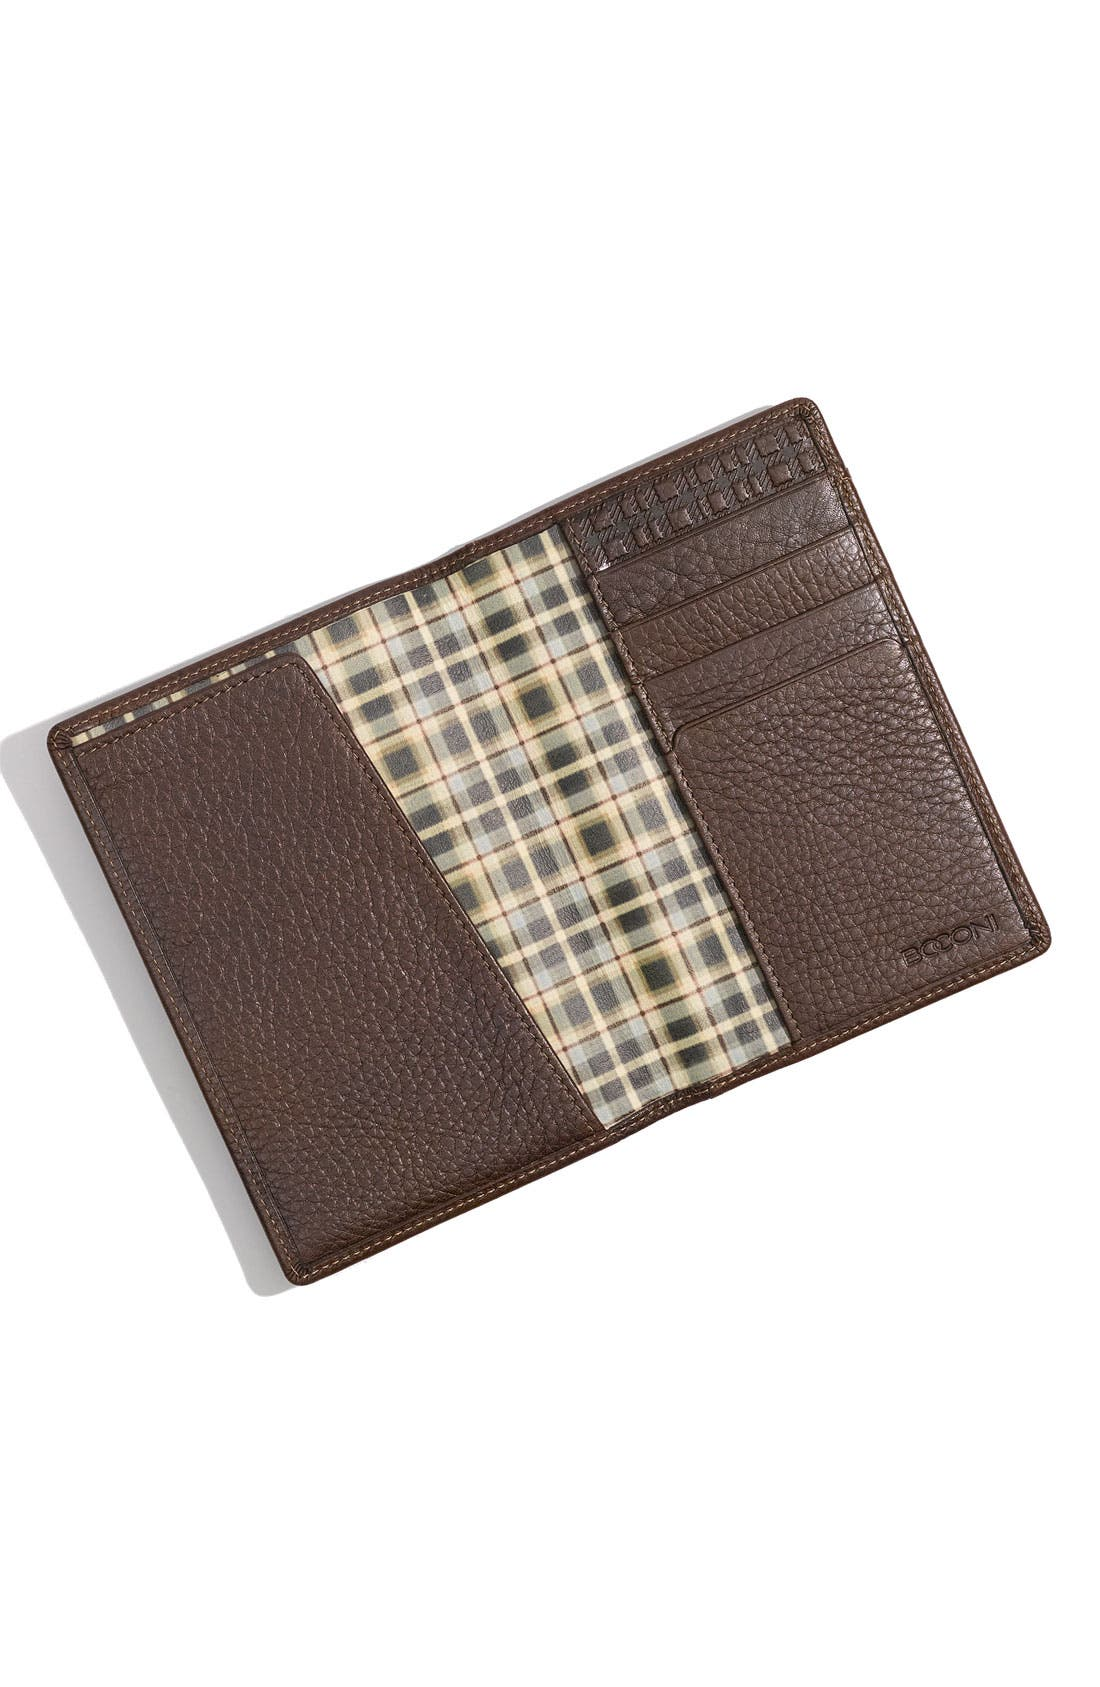 Alternate Image 3  - Boconi Passport Case